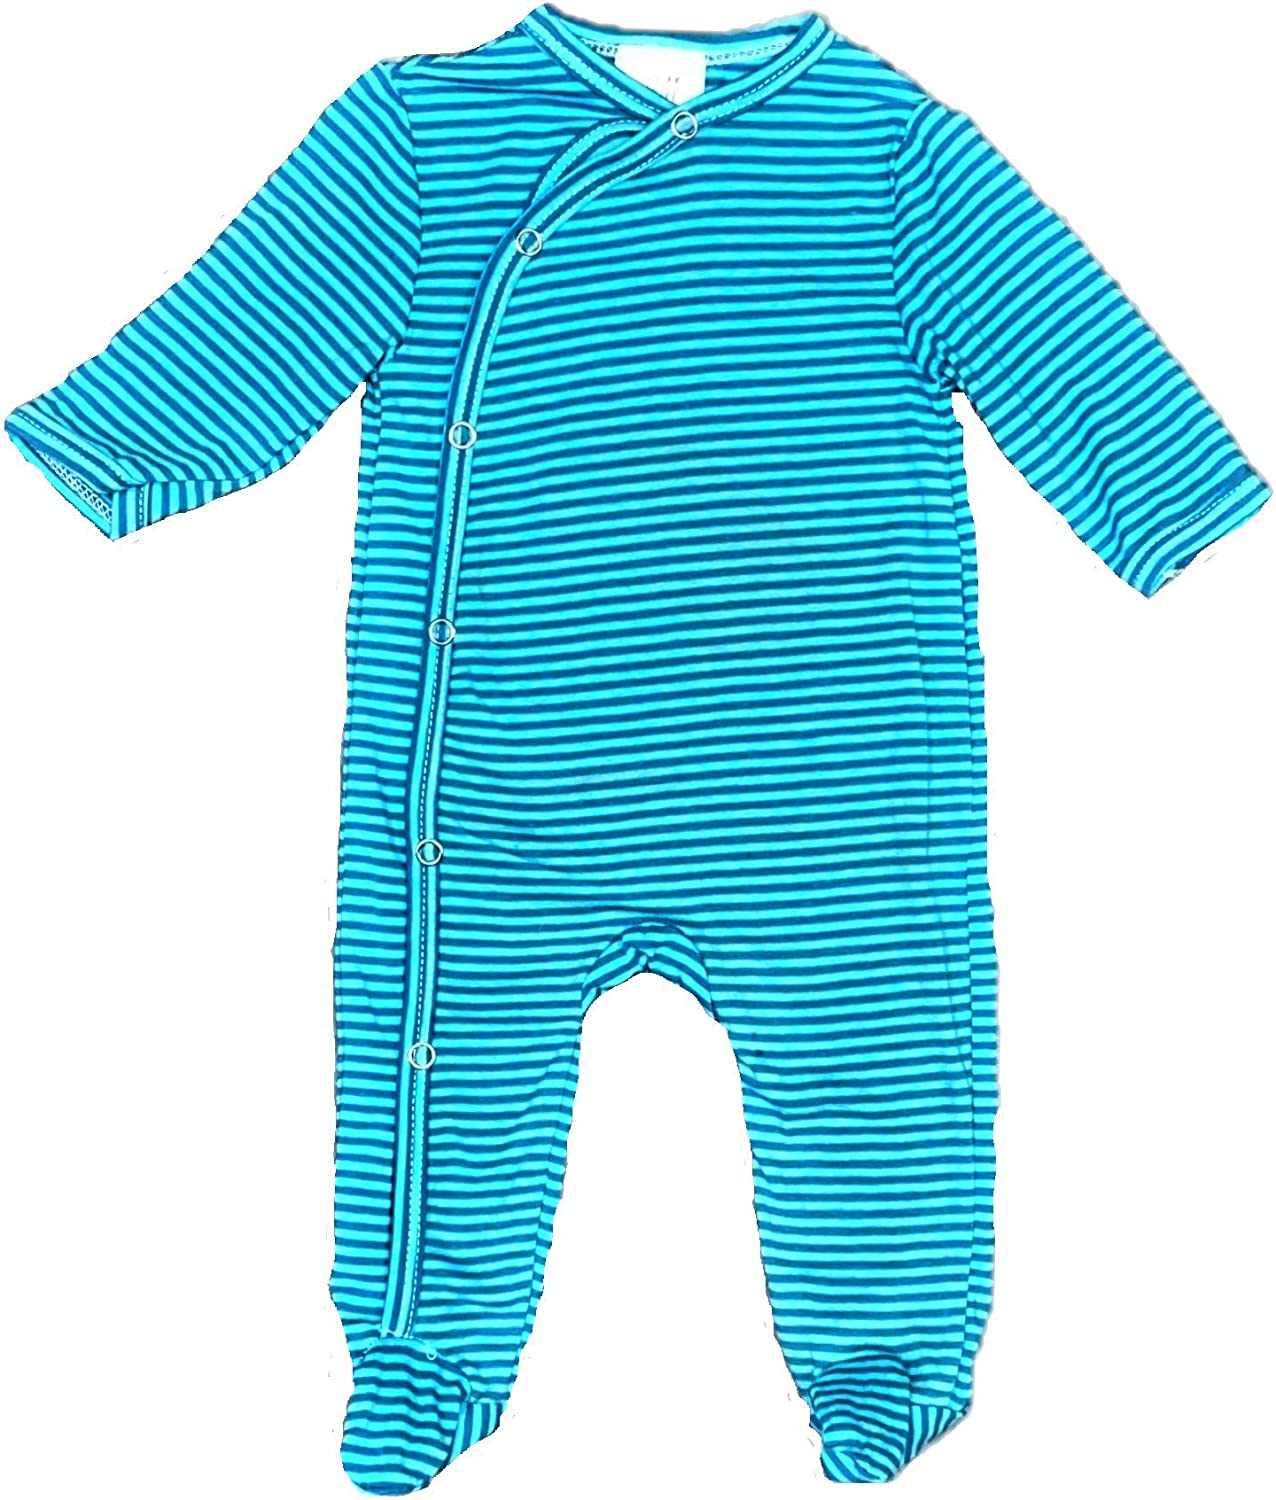 1-Piece Snug Fit Button up Newborn Footed Coveralls Closure Pajamas